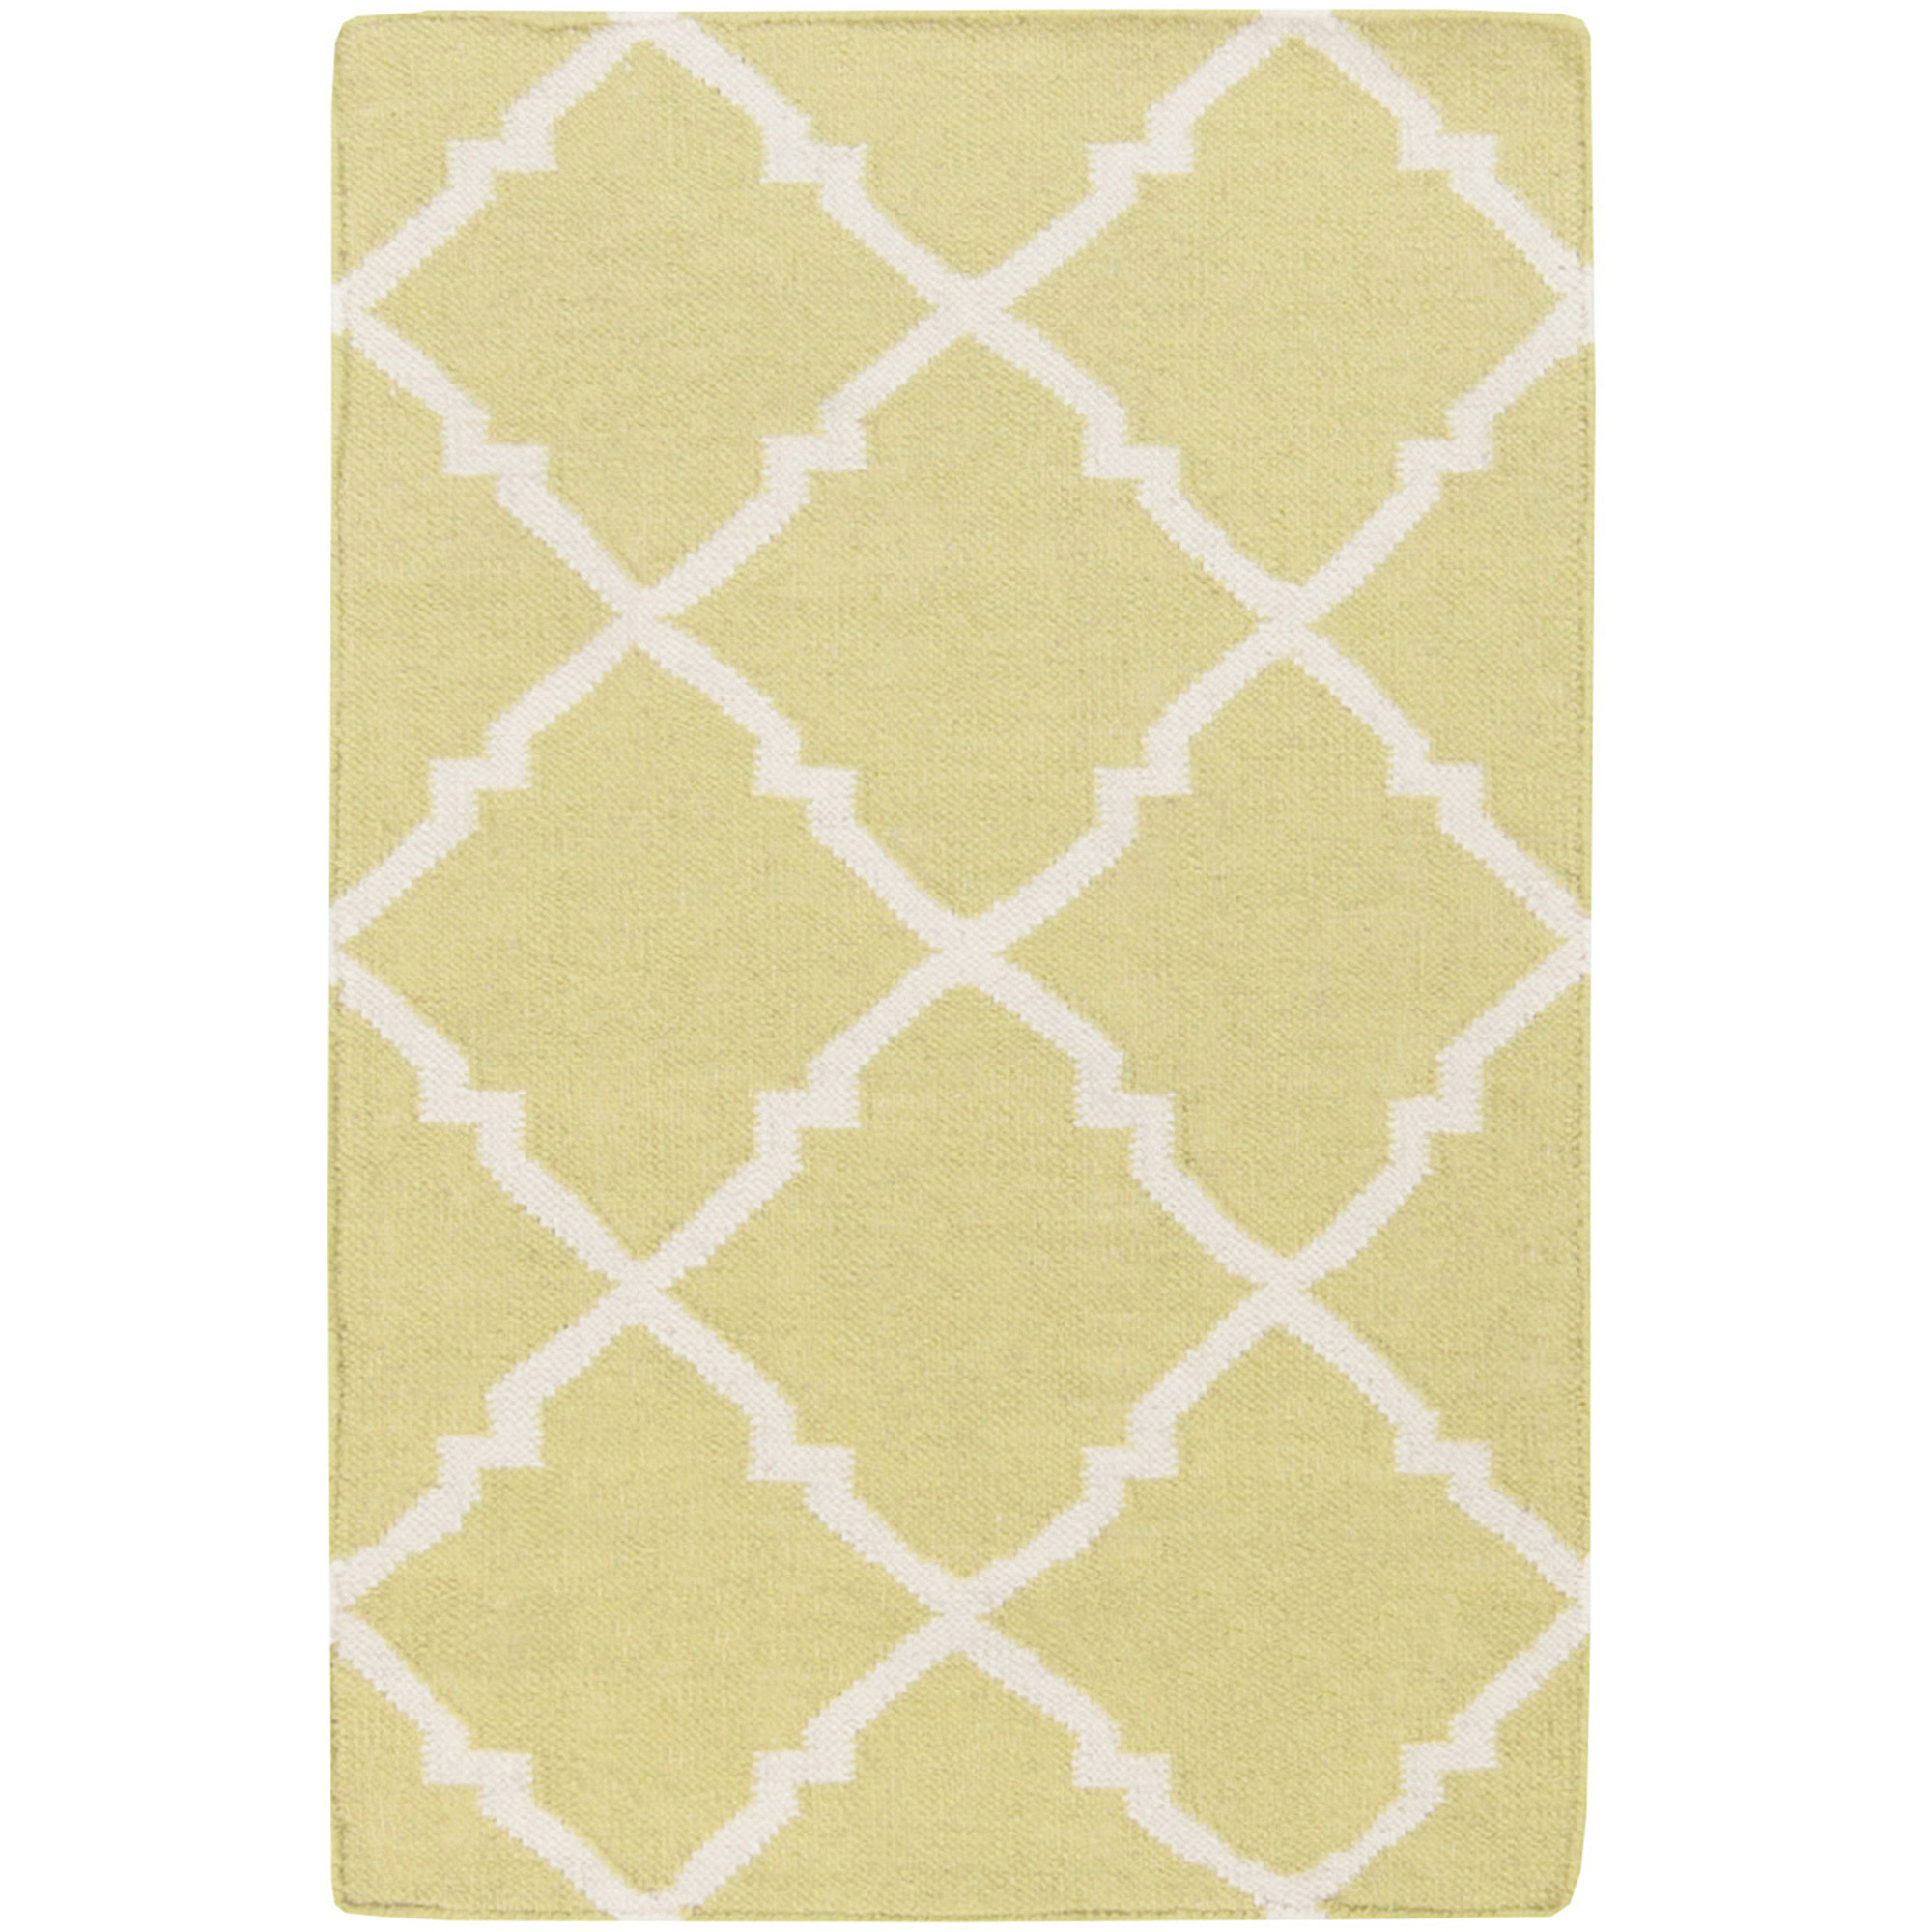 Art of Knot Prichard Hand Woven Gate Scroll Flatweave Wool Area Rug, Lime